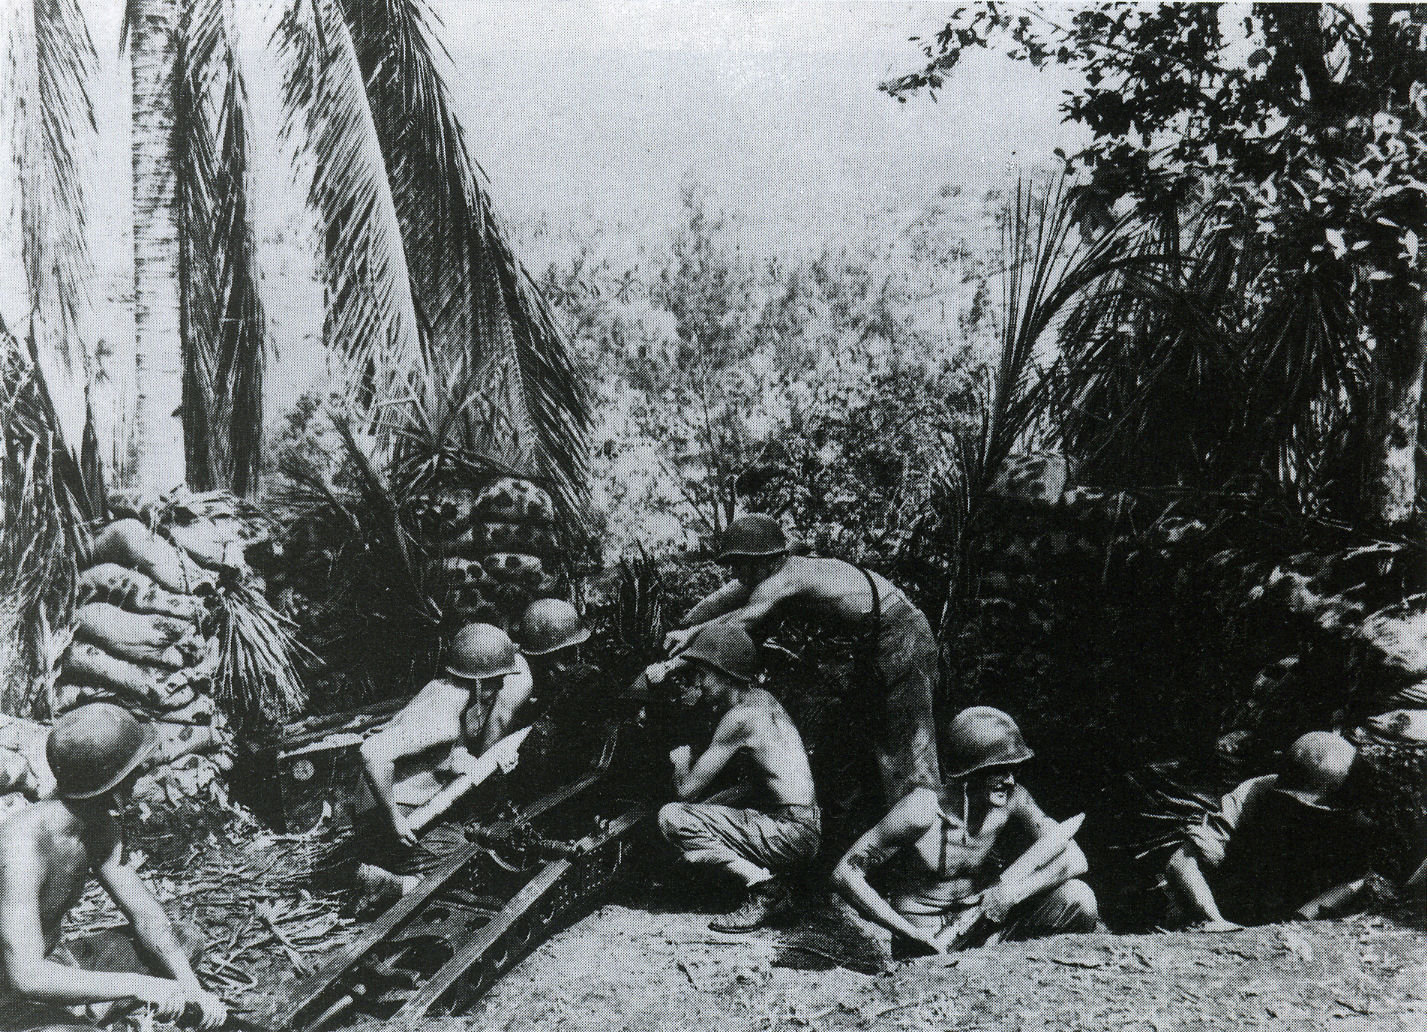 A U.S. 11th Marines 75mm pack howitzer and crew on Guadalcanal, September or October, 1942. The lean condition of the crewmembers indicate that they haven't been getting enough nutrition during this period.